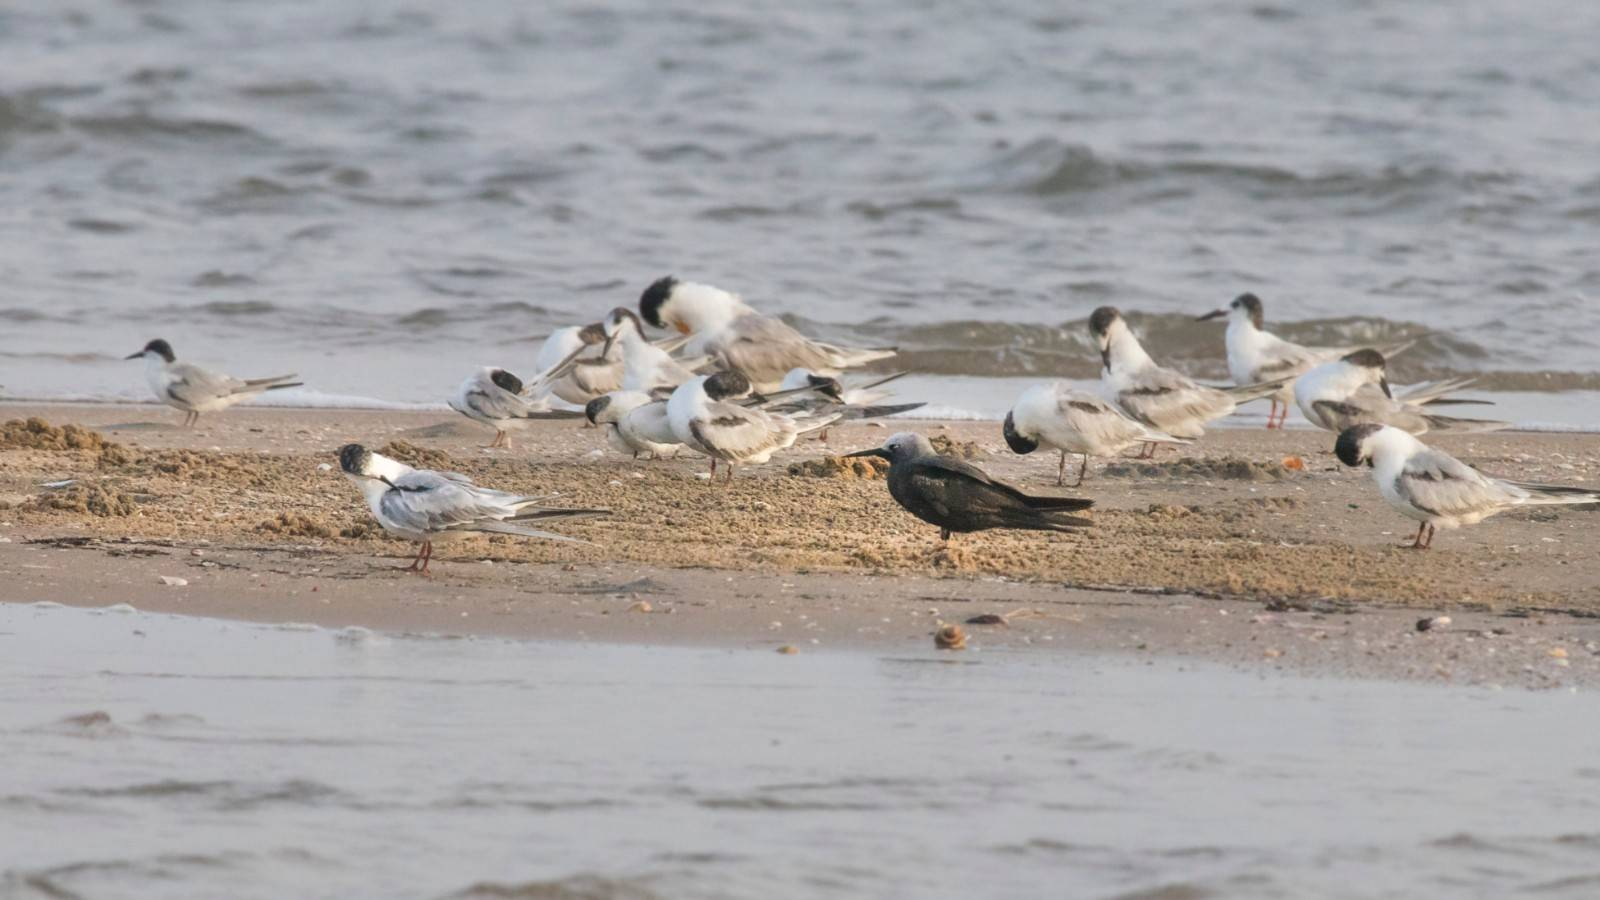 Lesser Noddy Greater Crested Tern Little Tern Pulicat Lake Boating Birding Caspian Tern